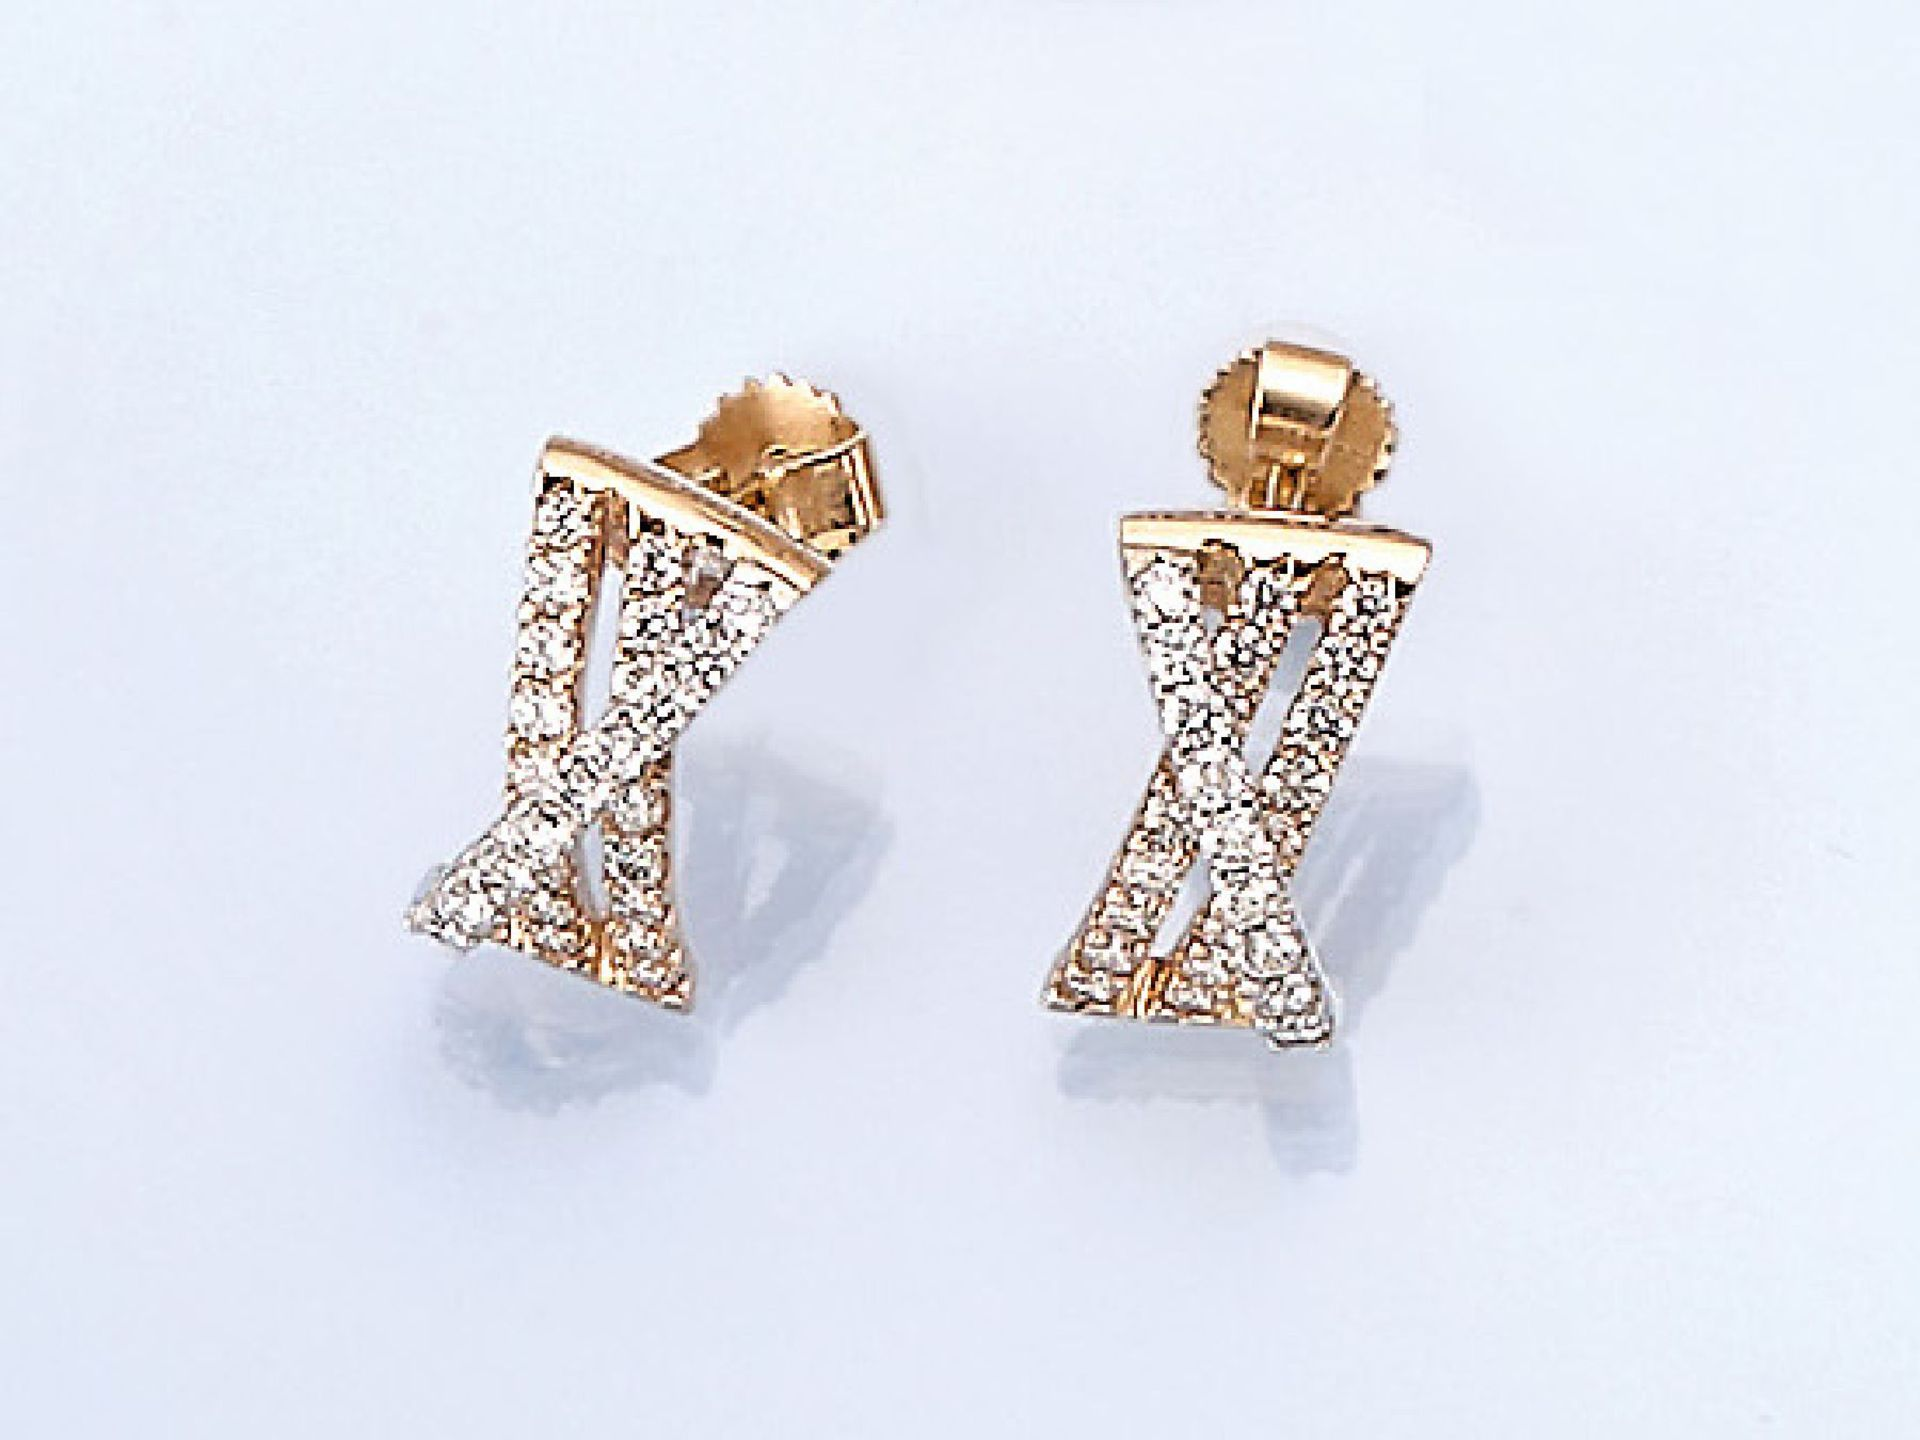 Los 61530 - Pair of 14 kt gold earrings with brilliants , YG/WG 585/000, brilliants total approx. 0.60 ct